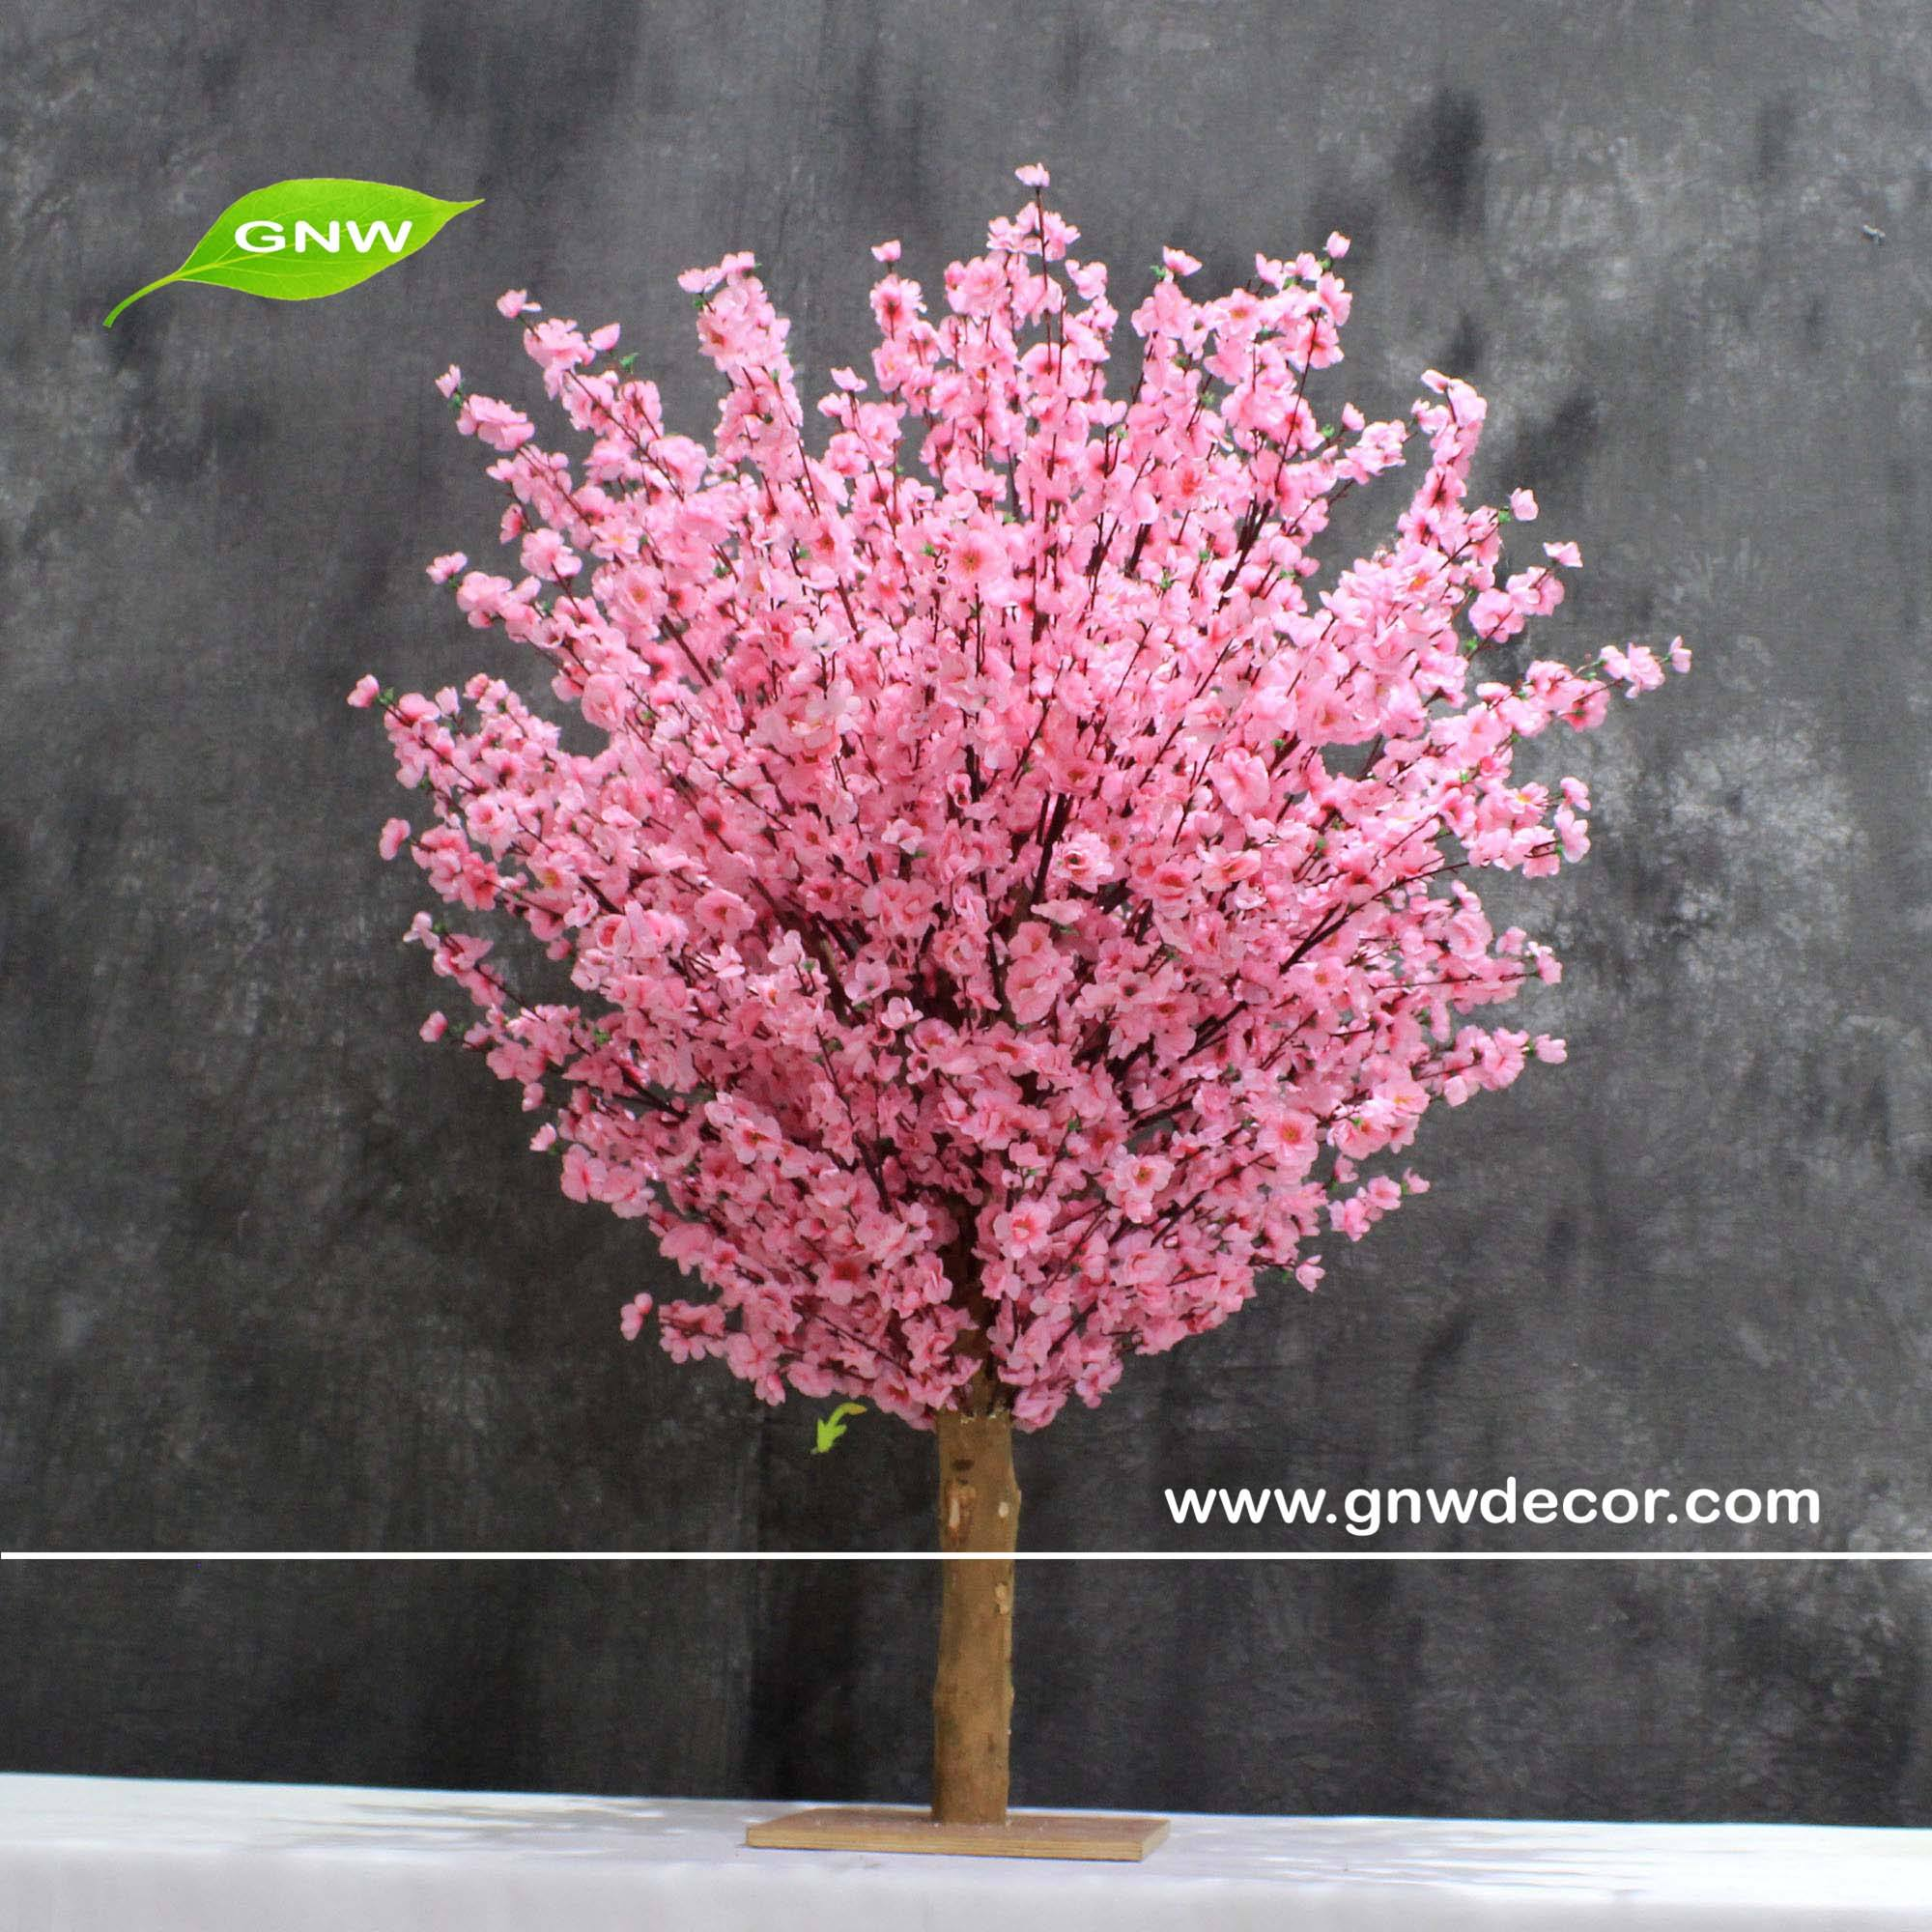 GNW BLS1503002 Fake peach blossom tree for wedding stage decoration